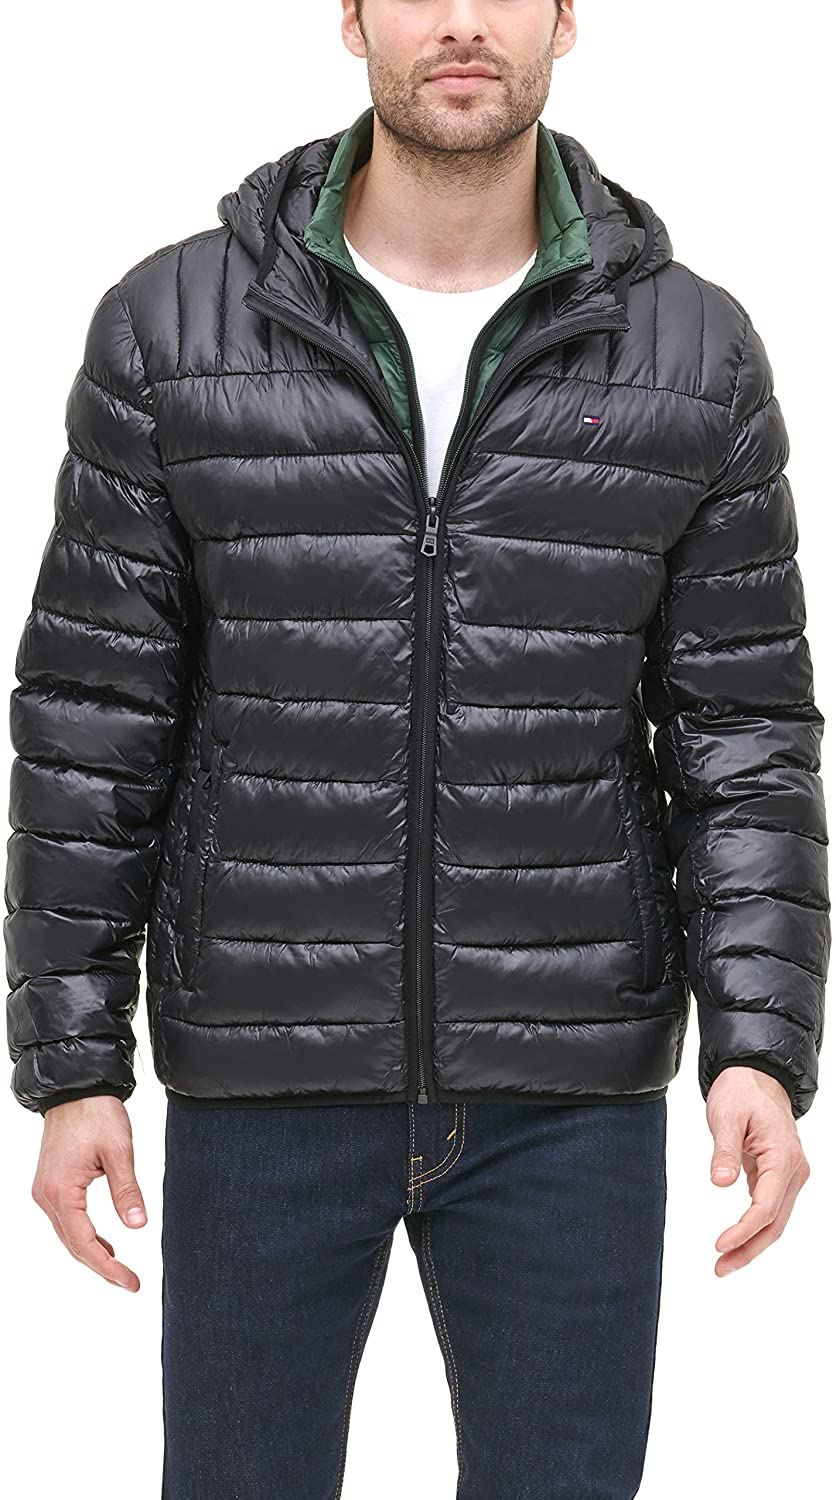 Carbon Medium Tommy Hilfiger Mens Ultra Loft Sweaterweight Quilted Packable Jacket